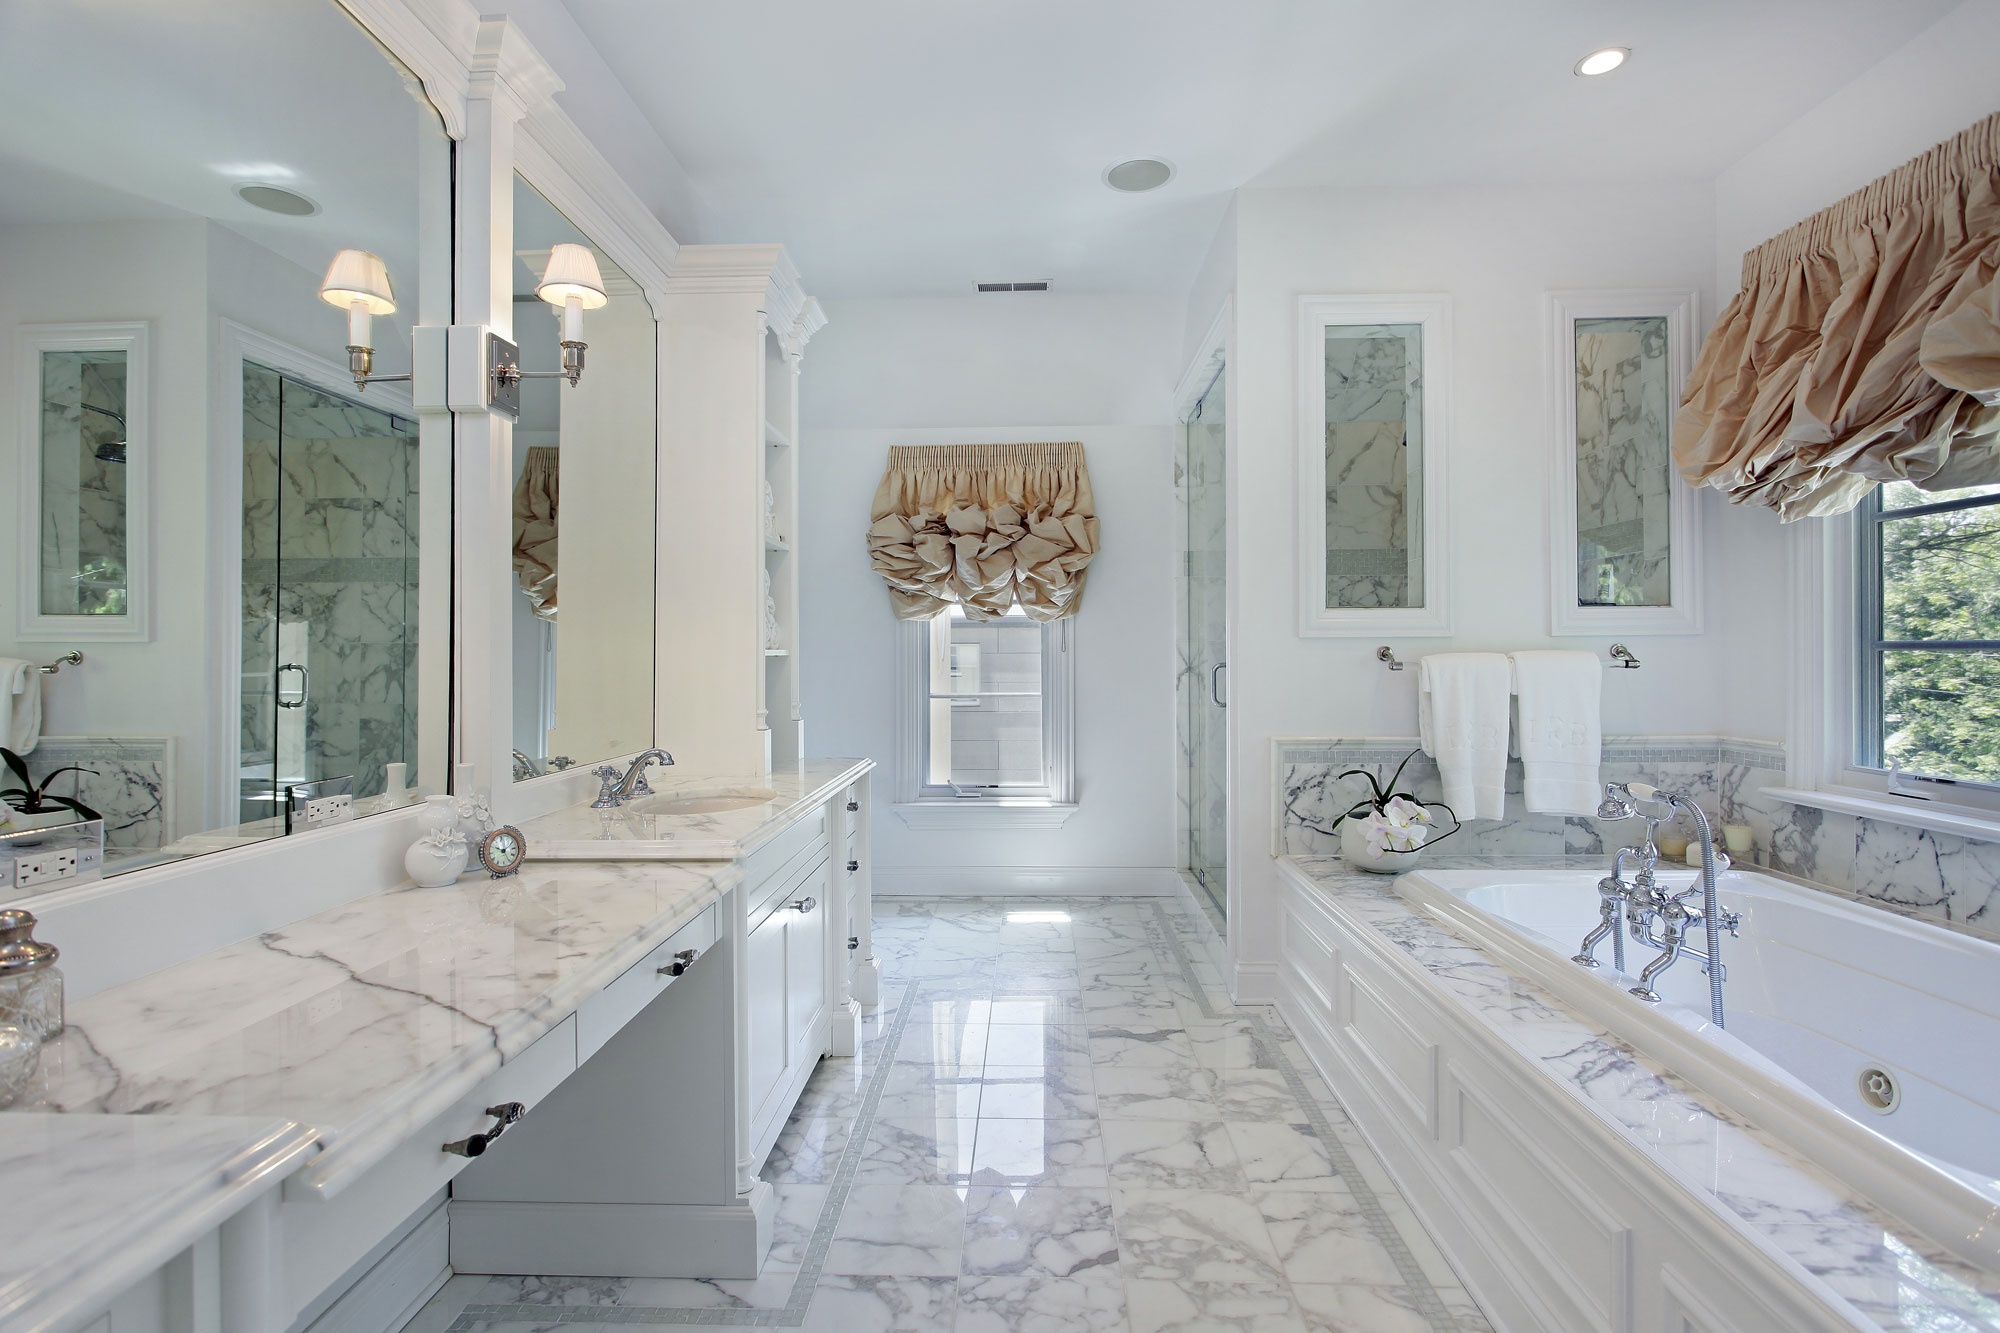 Bathroom Remodel Permit room additions and remodeling services malibu, california | my